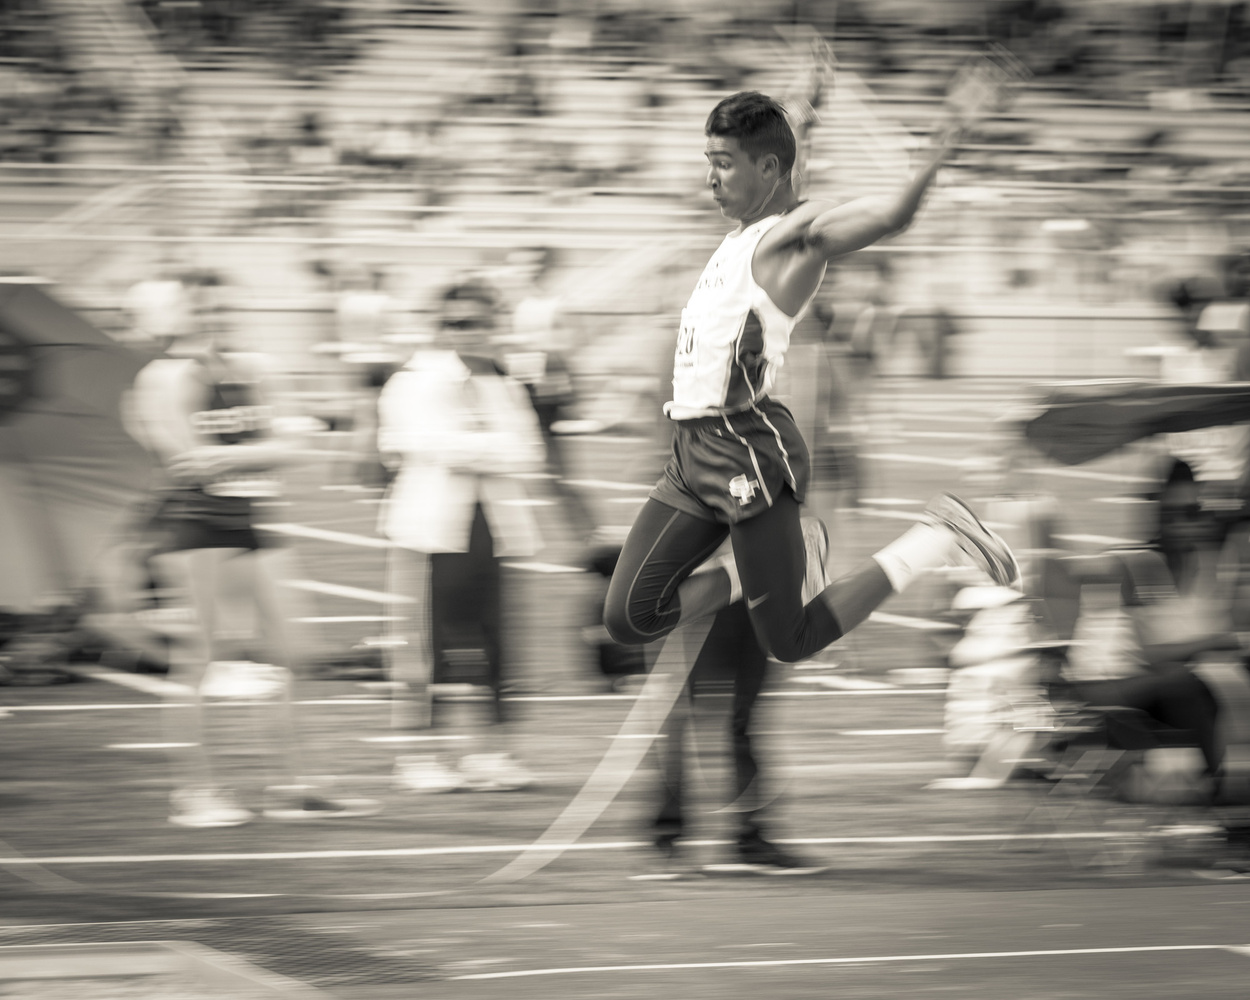 Vintage Long Jump by Sean Gibson